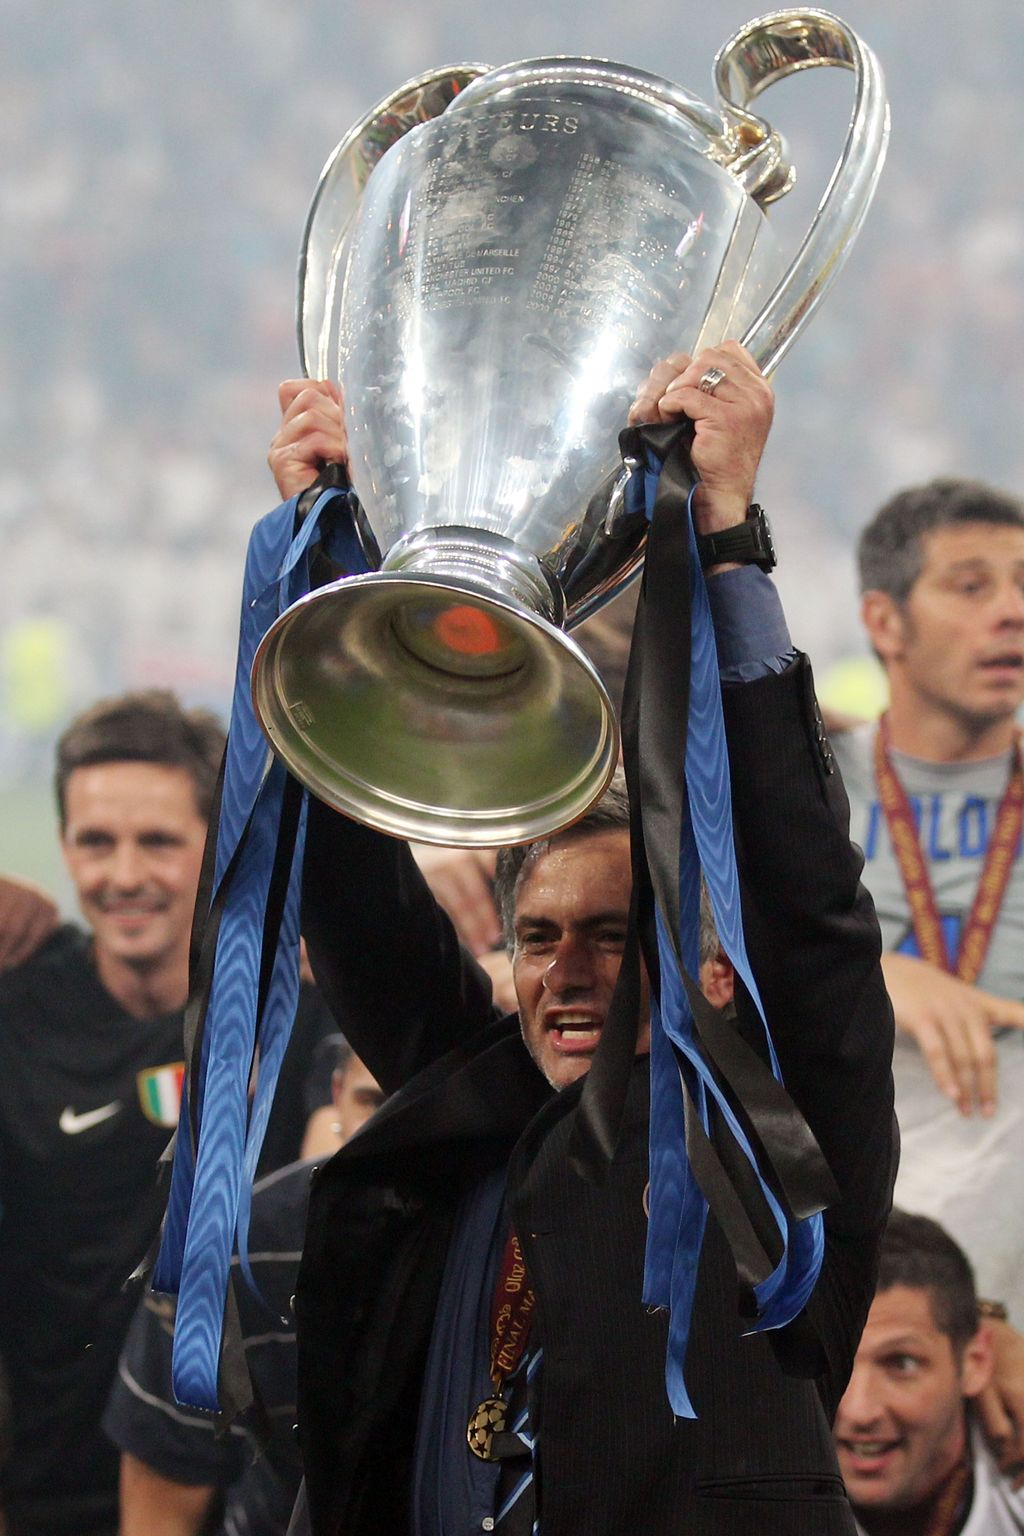 MADRID, SPAIN - MAY 22:  Head coach Jose Mourinho of Inter Milan lifts the UEFA Champions League trophy following their team's victory at the end of the UEFA Champions League Final match between FC Bayern Muenchen and Inter Milan at the Estadio Santiago Bernabeu on May 22, 2010 in Madrid, Spain.  (Photo by Alex Livesey/Getty Images)